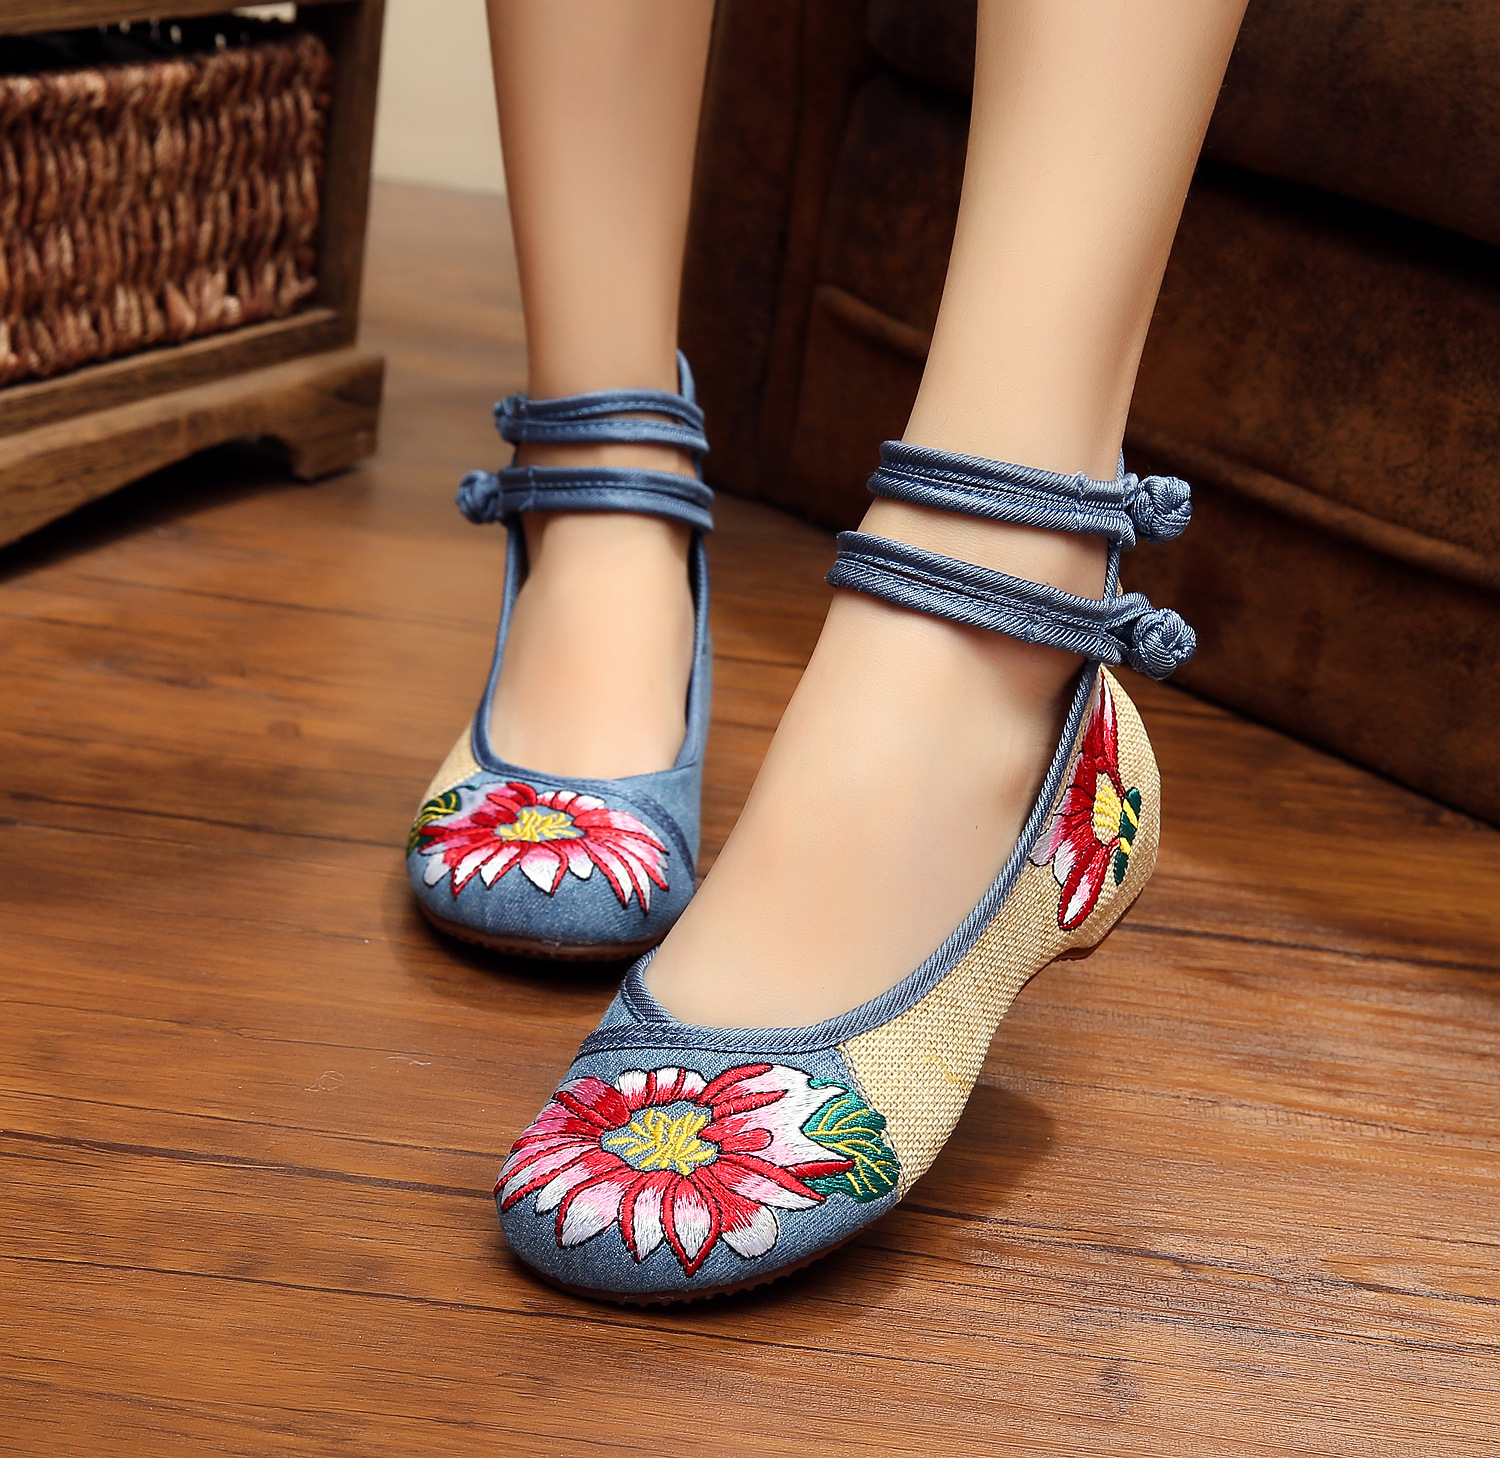 Veowalk Big Size 41 Ballerinas Dancing Shoes Women Peacock Embroidery Soft Sole Casual Shoes Beijing Cloth Walking Flats weowalk 5 colors chinese dragon embroidery women s old beijing shoes ladies casual cotton driving ballets flats big size 34 41